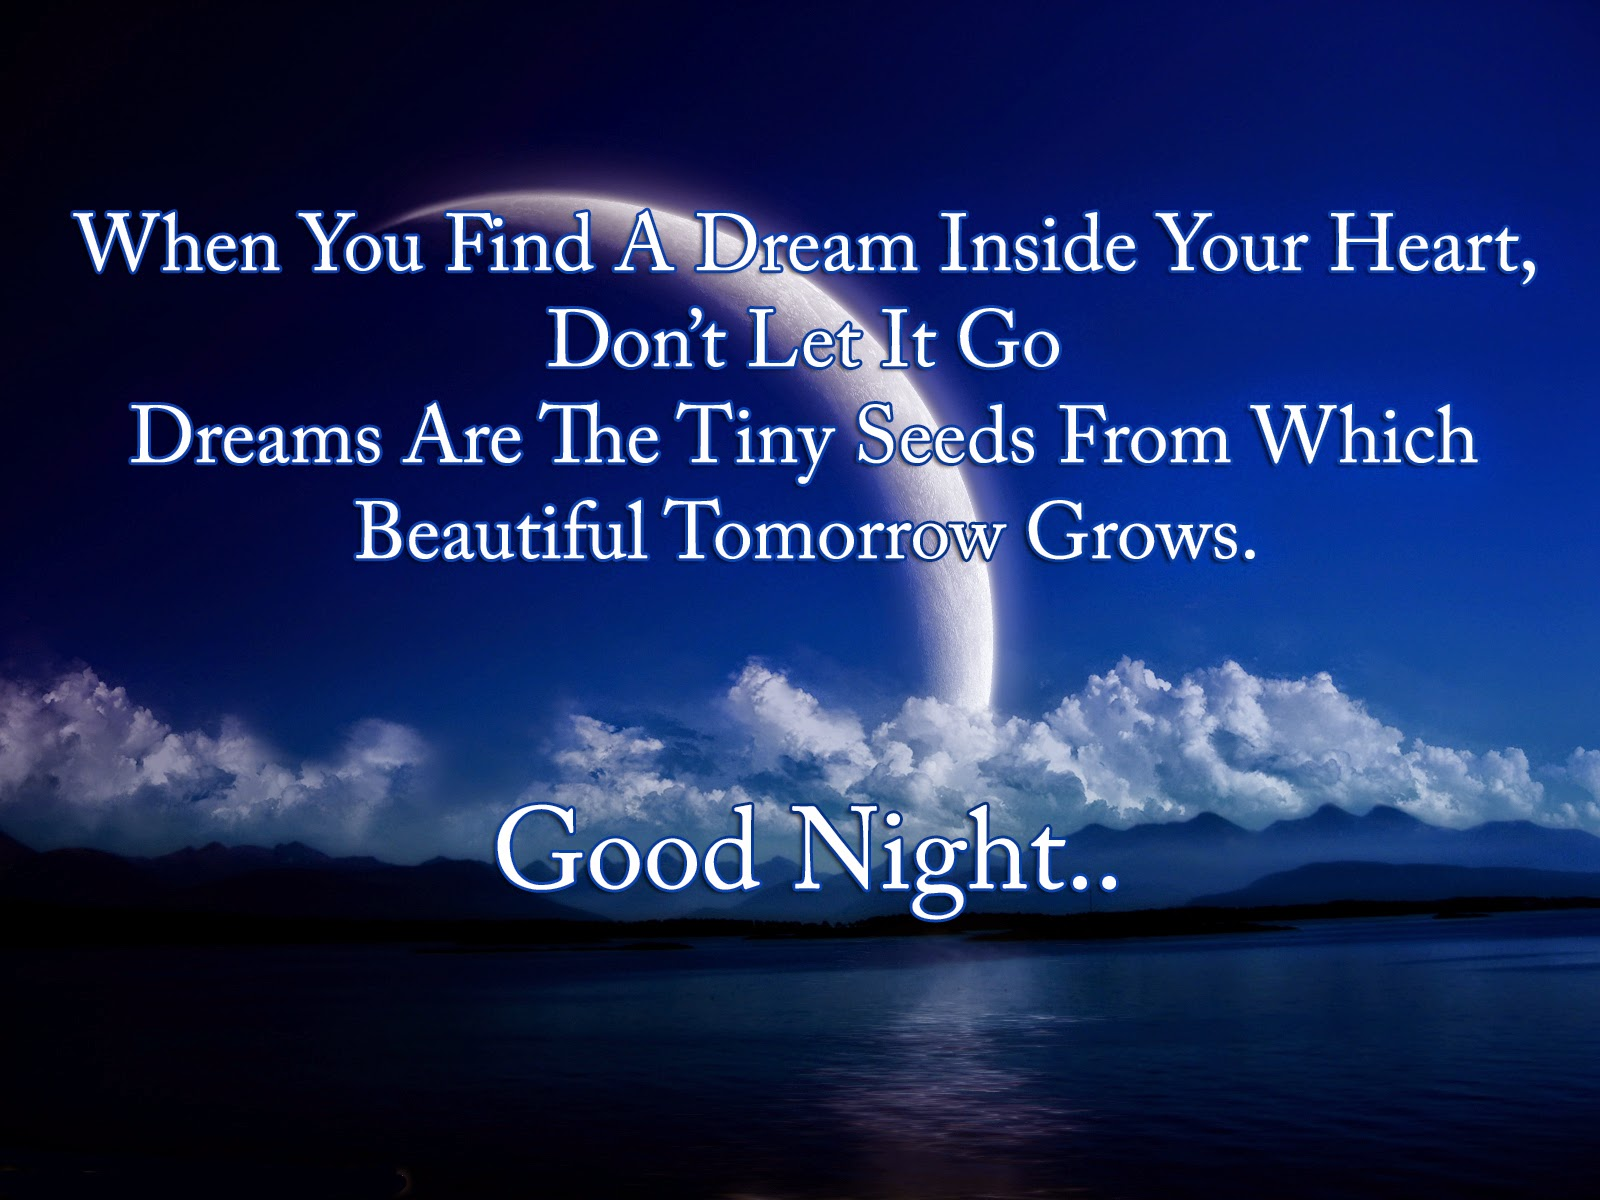 Famous good night love quotes greeting photos this blog about famous good night love quotes greeting photos m4hsunfo Image collections